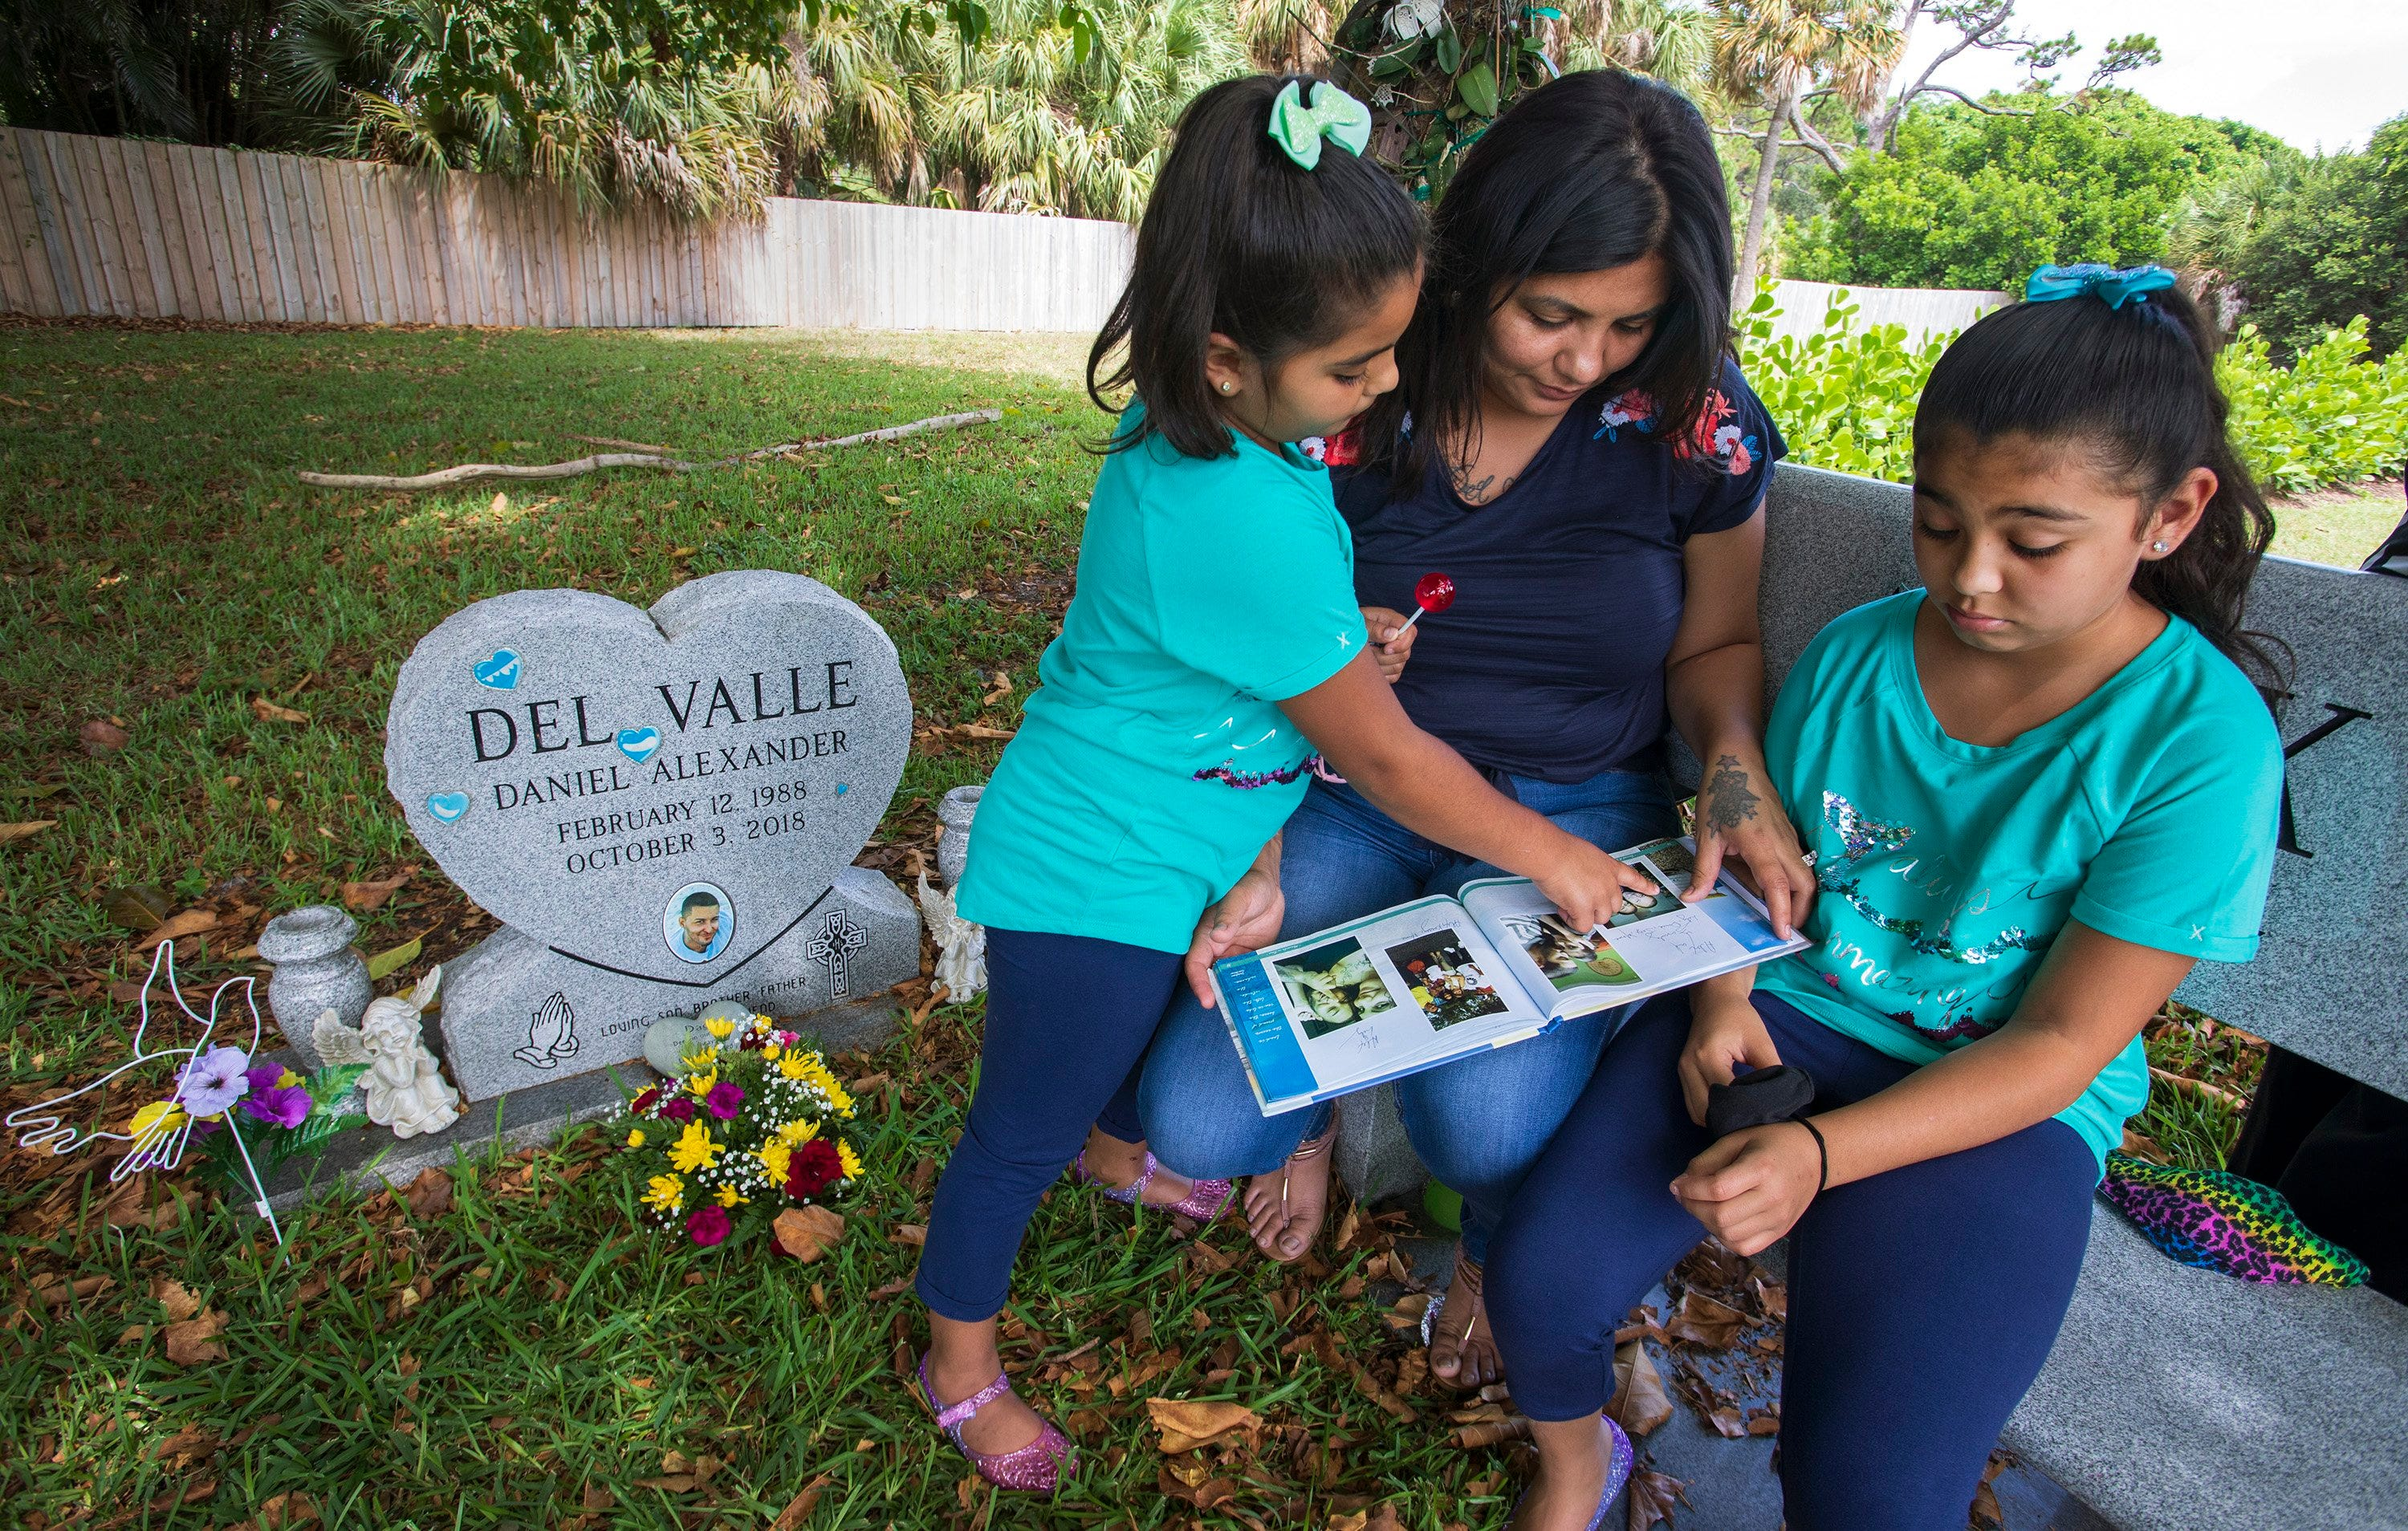 Lily Burke, with her and Daniel Del Valle's daughters, Lily and Daniela, look at a photo book at Daniel's gravesite in West Palm Beach on July 2, 2020. He was killed in October 2018.